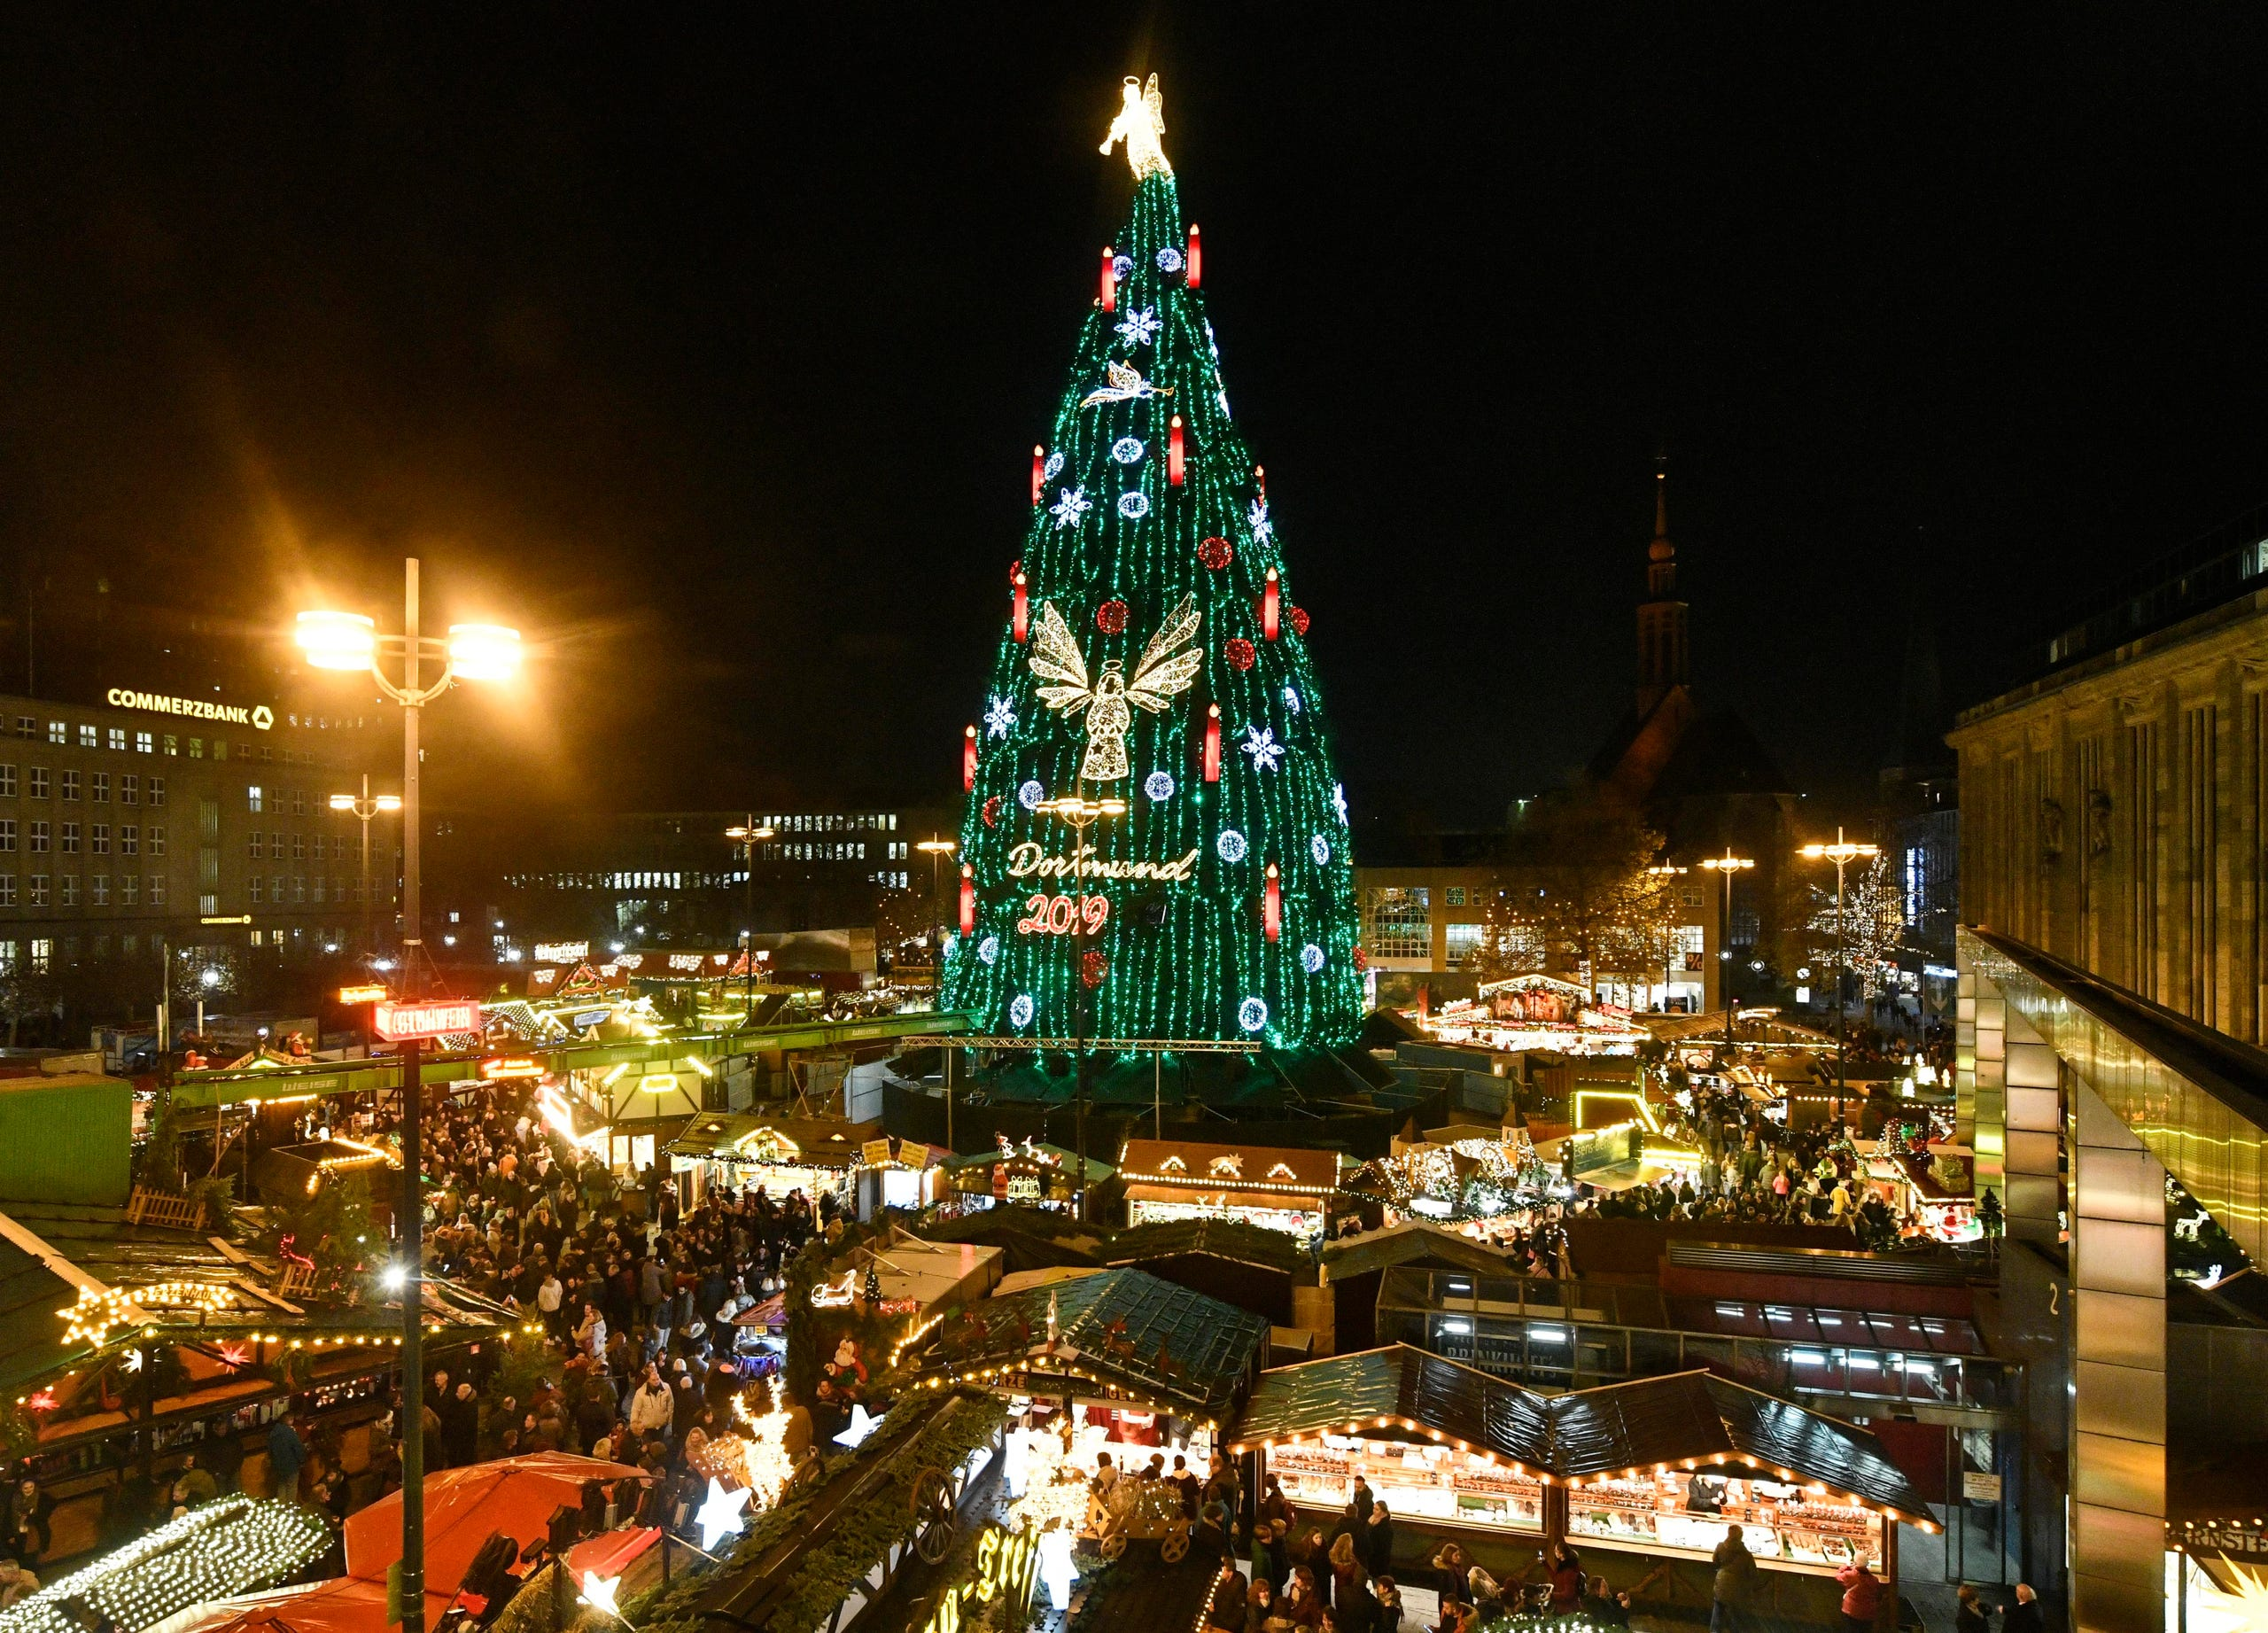 German Christmas Markets Kick Off Holiday Season With Food Fun Decor